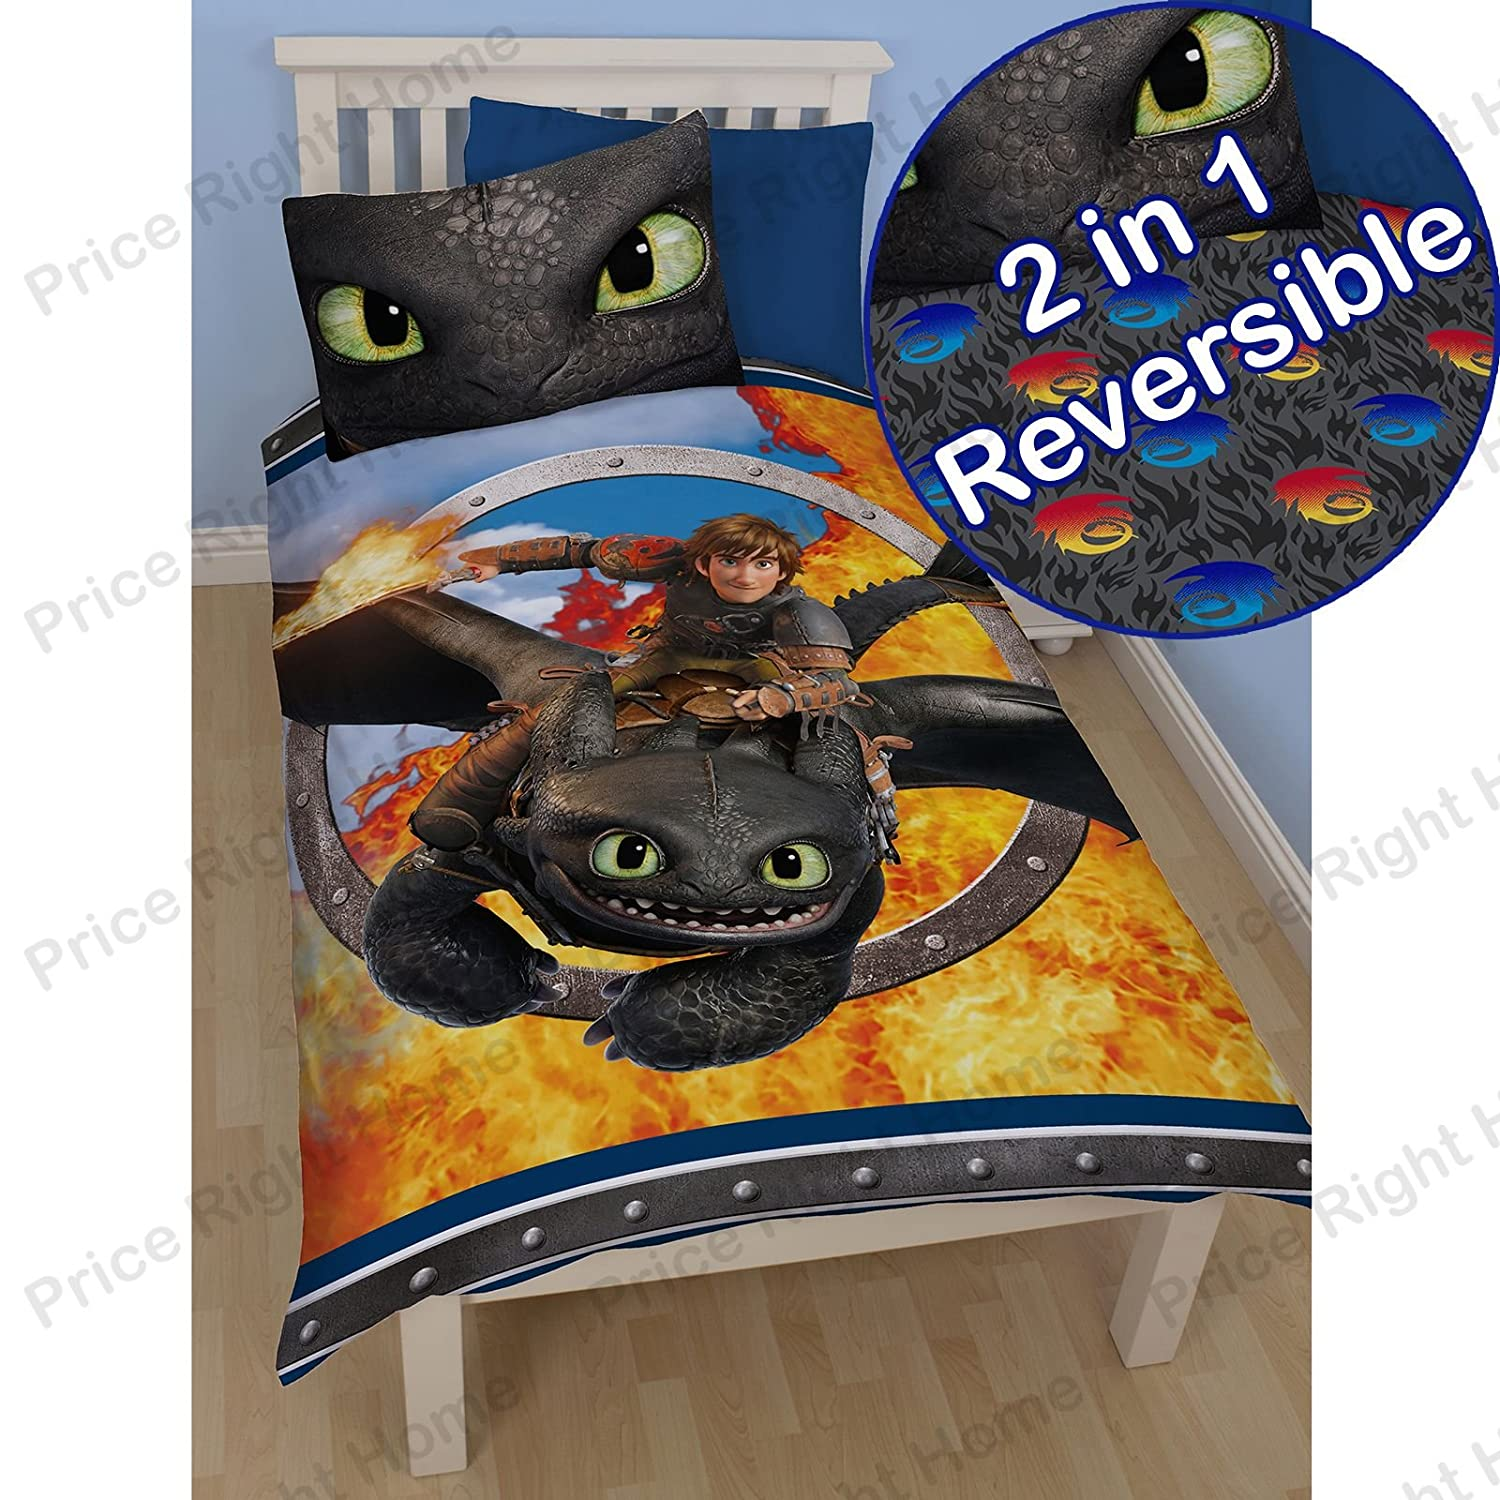 Character world dreamworks dragons toothless single panel duvet character world dreamworks dragons toothless single panel duvet set amazon kitchen home ccuart